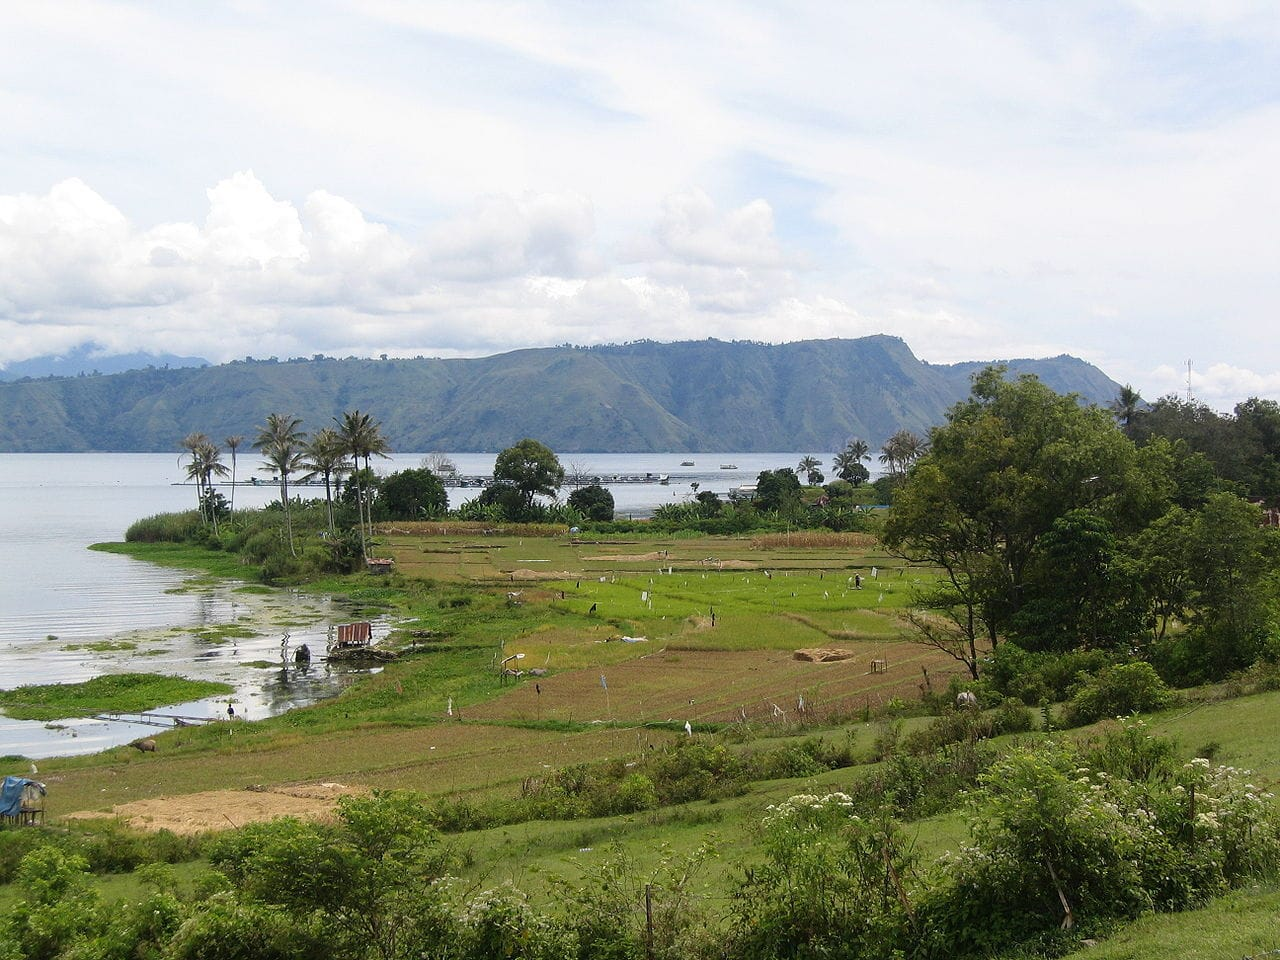 Samosir Island in Lake Toba by Tbachner Wikimedia Commons